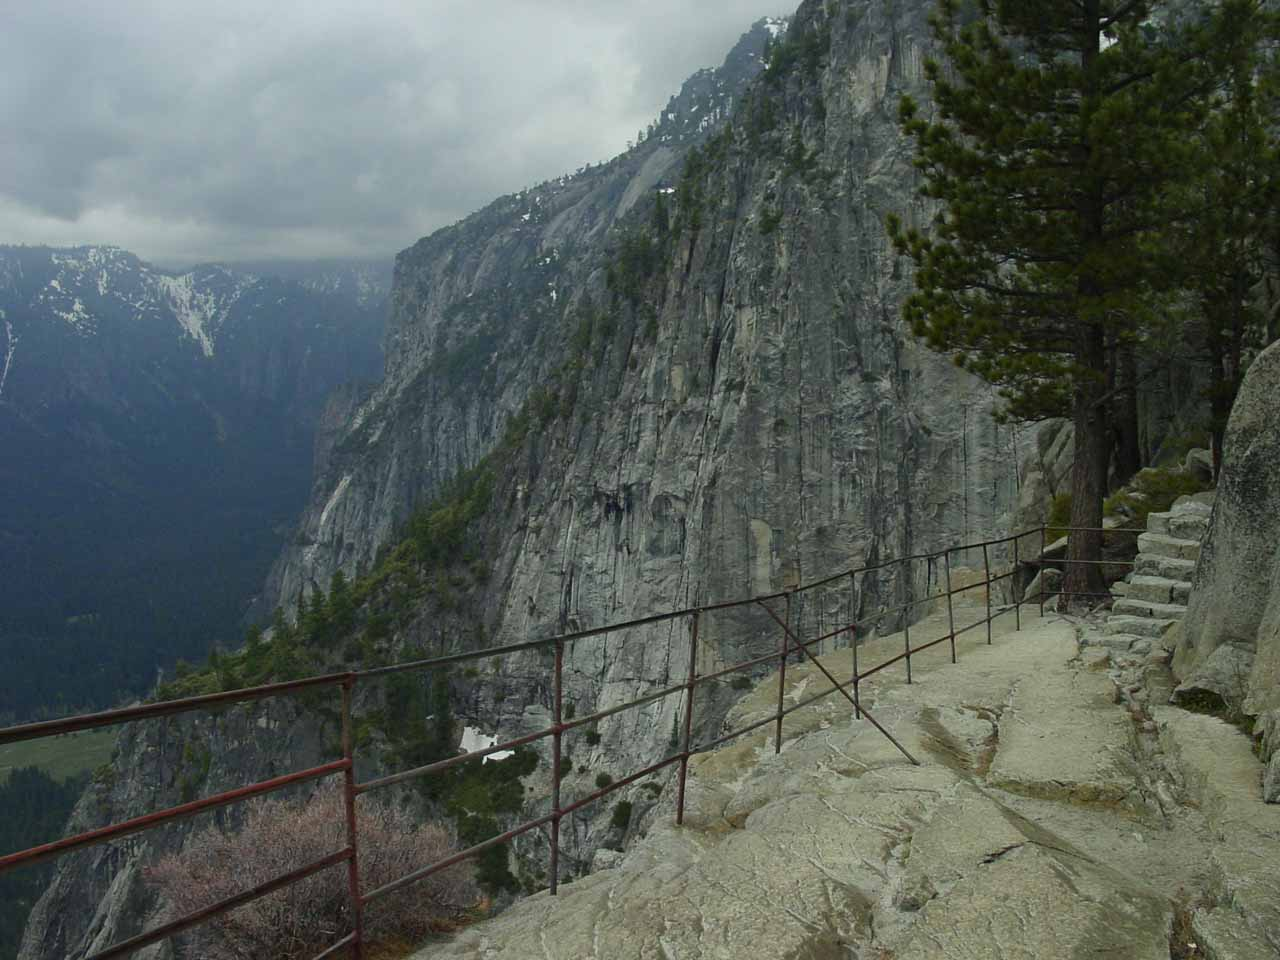 The viewing area at the top of Yosemite Falls